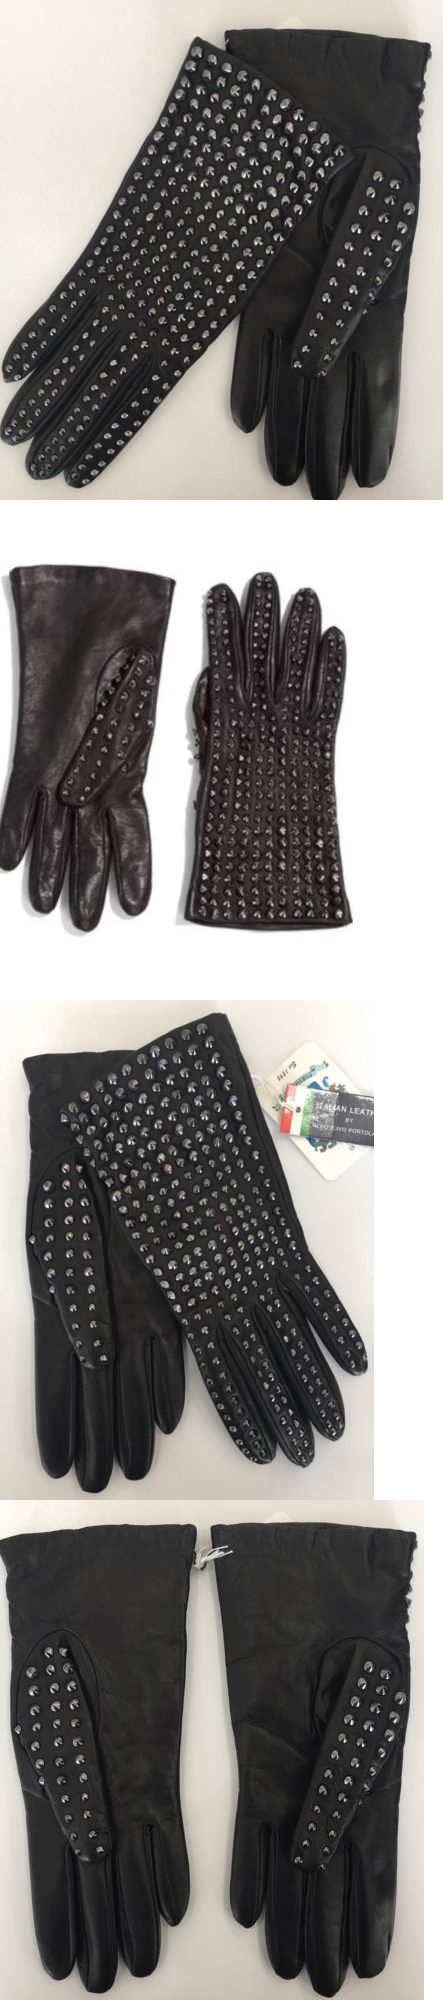 Gloves and Mittens 105559: Nwt Authentic Portolano Studded Black Leather Cashmere Lined Gloves Sz 7 -> BUY IT NOW ONLY: $155 on eBay!